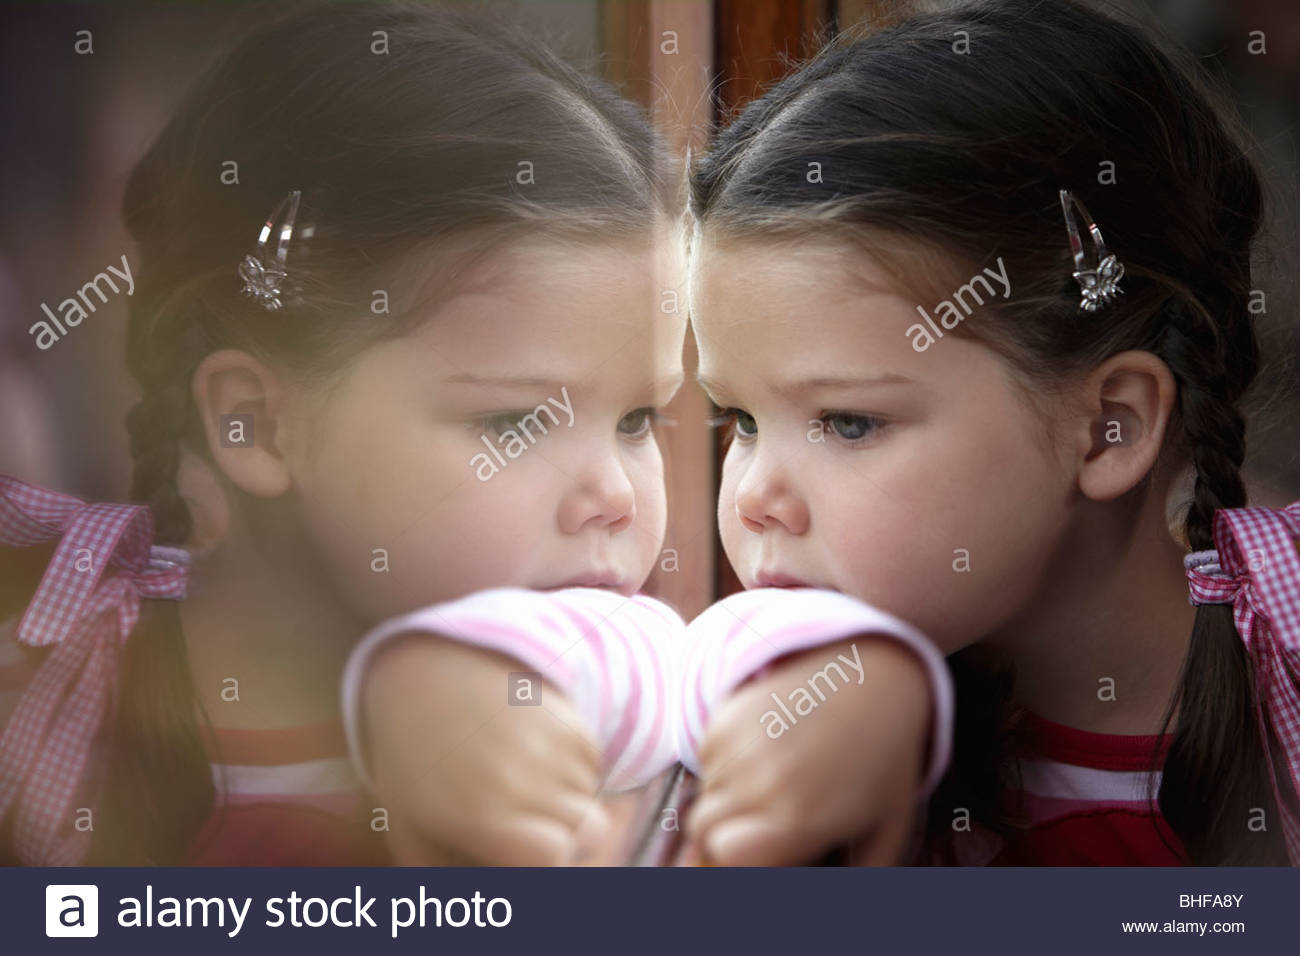 Girl and her reflection in window - Stock Image